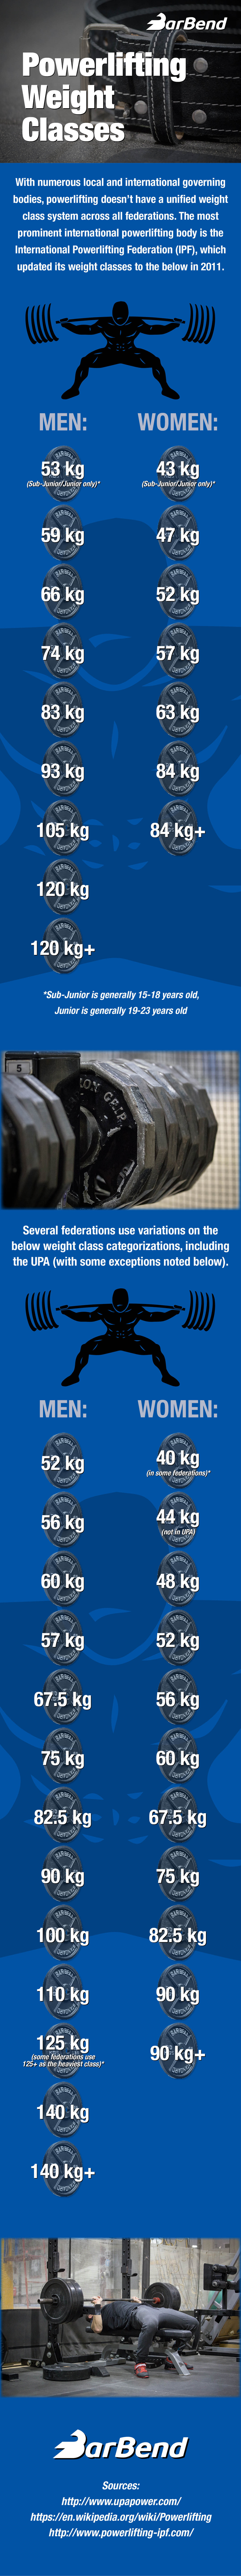 Powerlifting Weight Classes